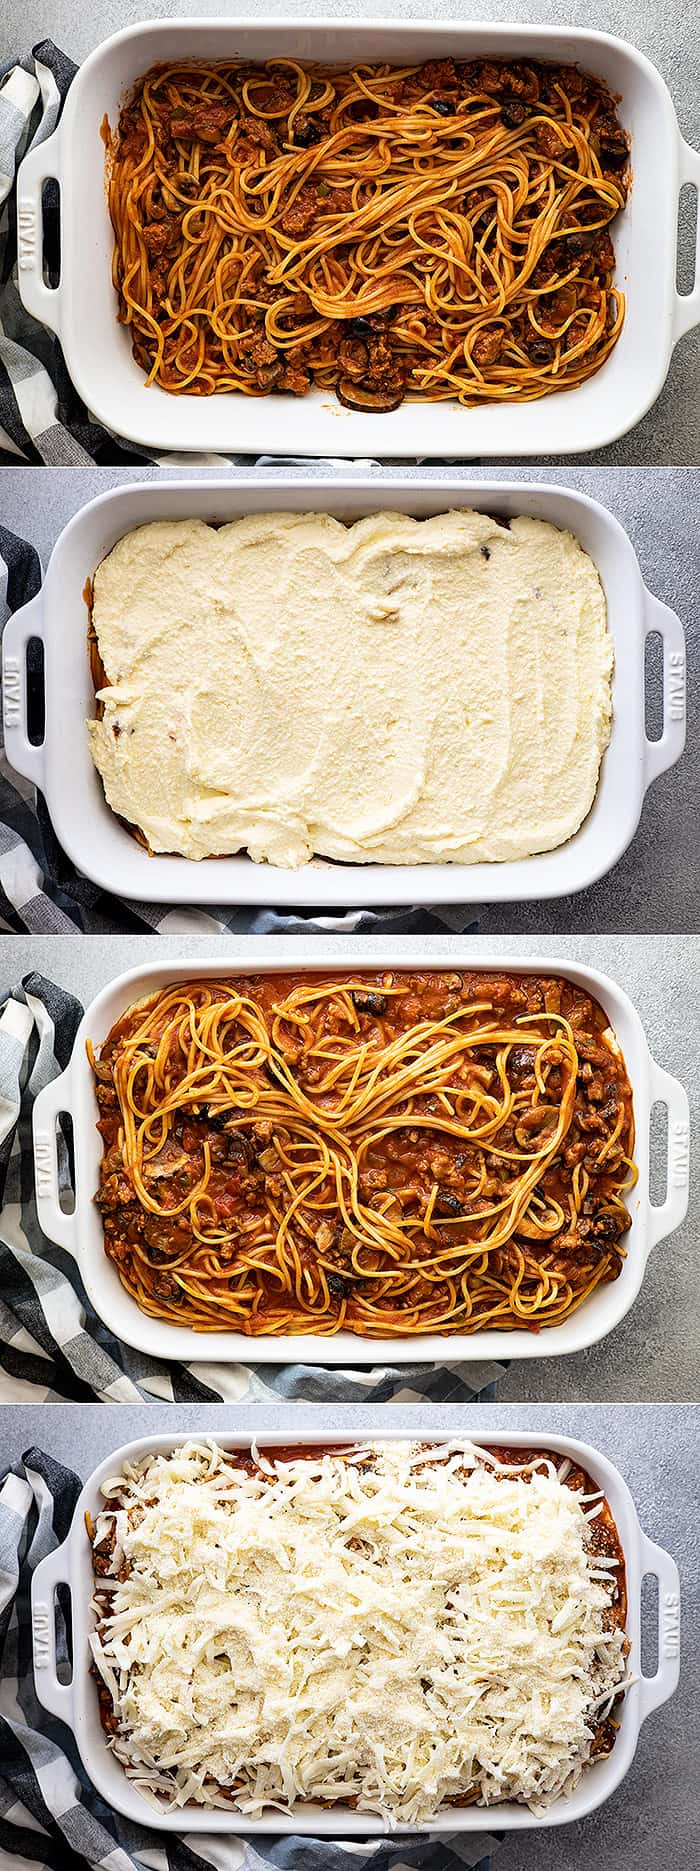 Four pictures showing how to layer the million dollar spaghetti casserole.